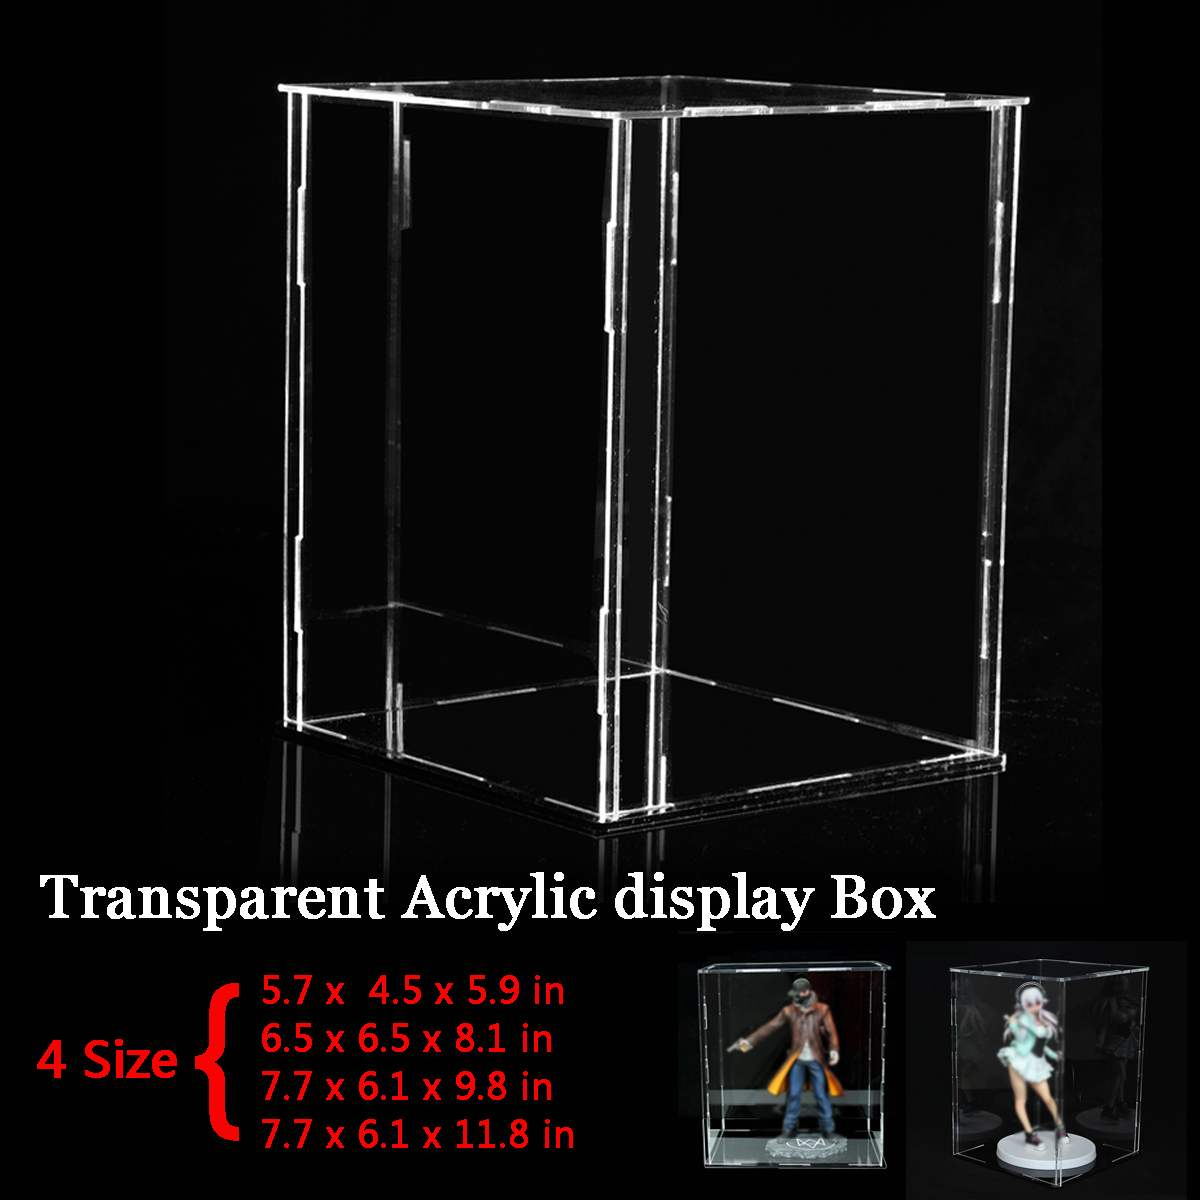 4 Size Acrylic Display Show Box Case Cube Toy Dust Proof Tray Protection Display Assembled Box Case For Children Blocks Toys